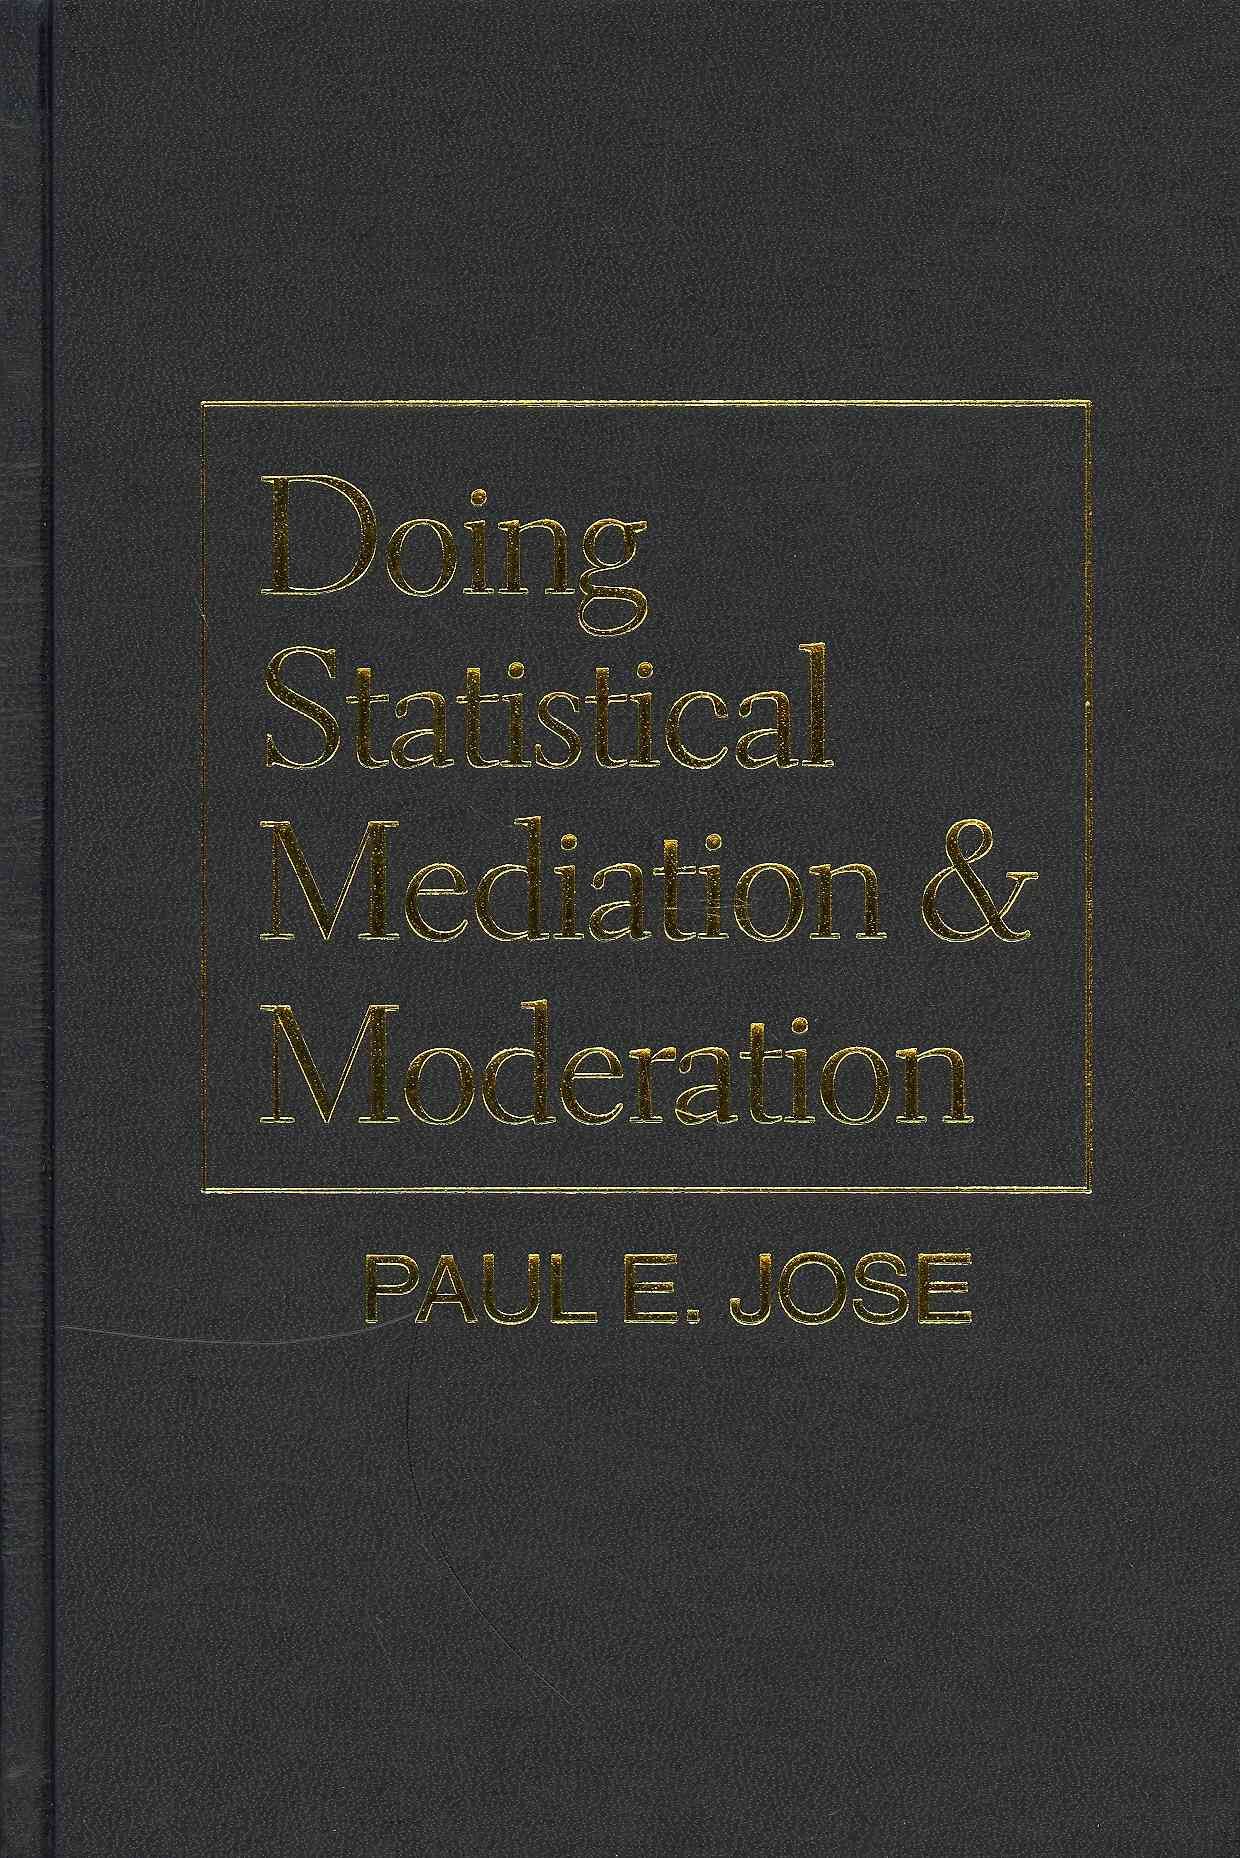 Doing Statistical Mediation and Moderation By Jose, Paul E.